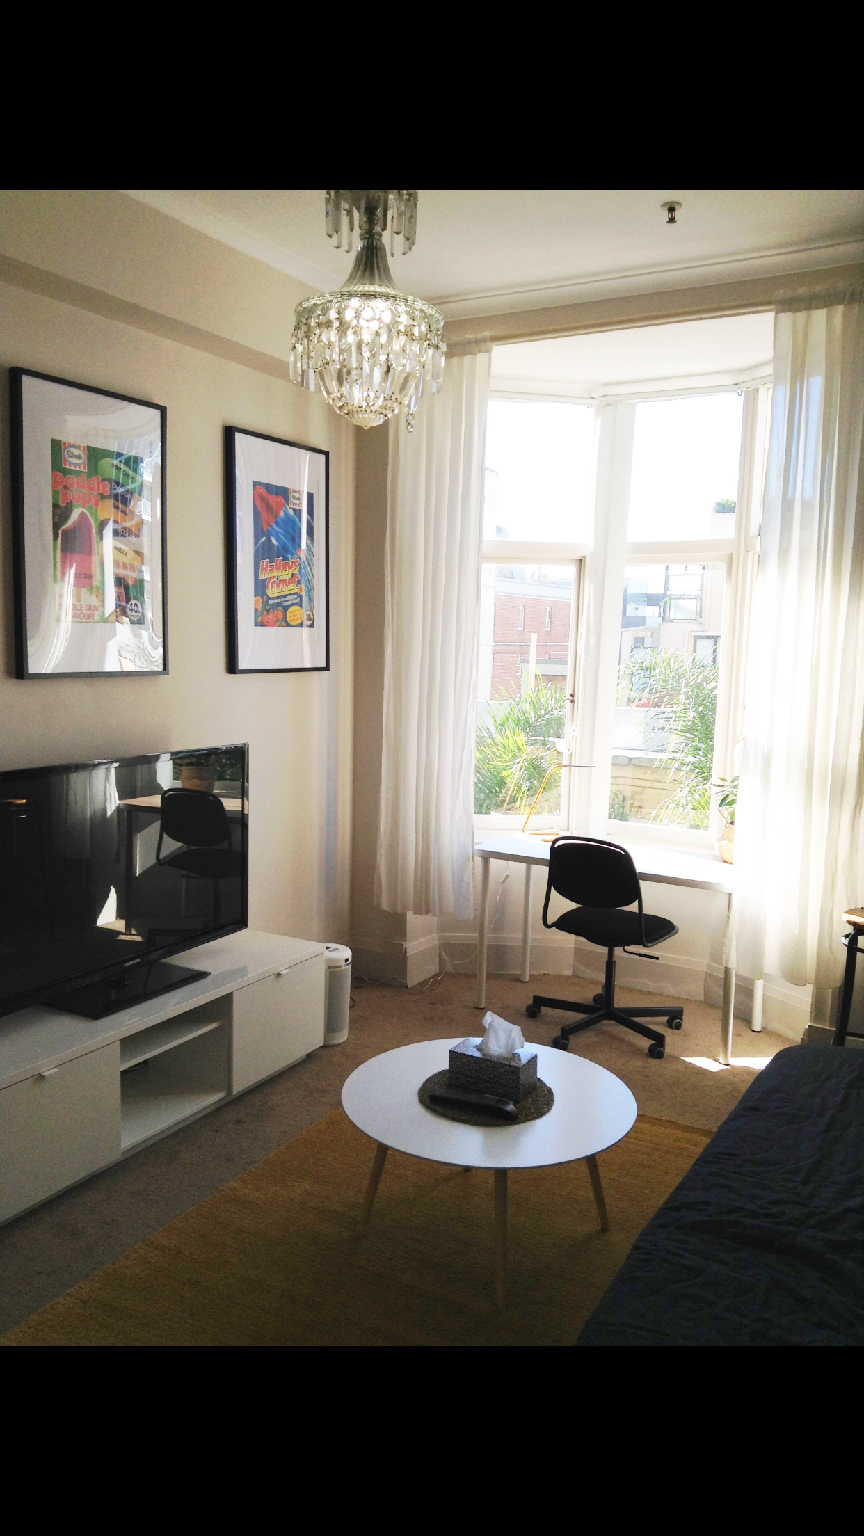 2 Bed Apartment In The Heart Of Sydney City